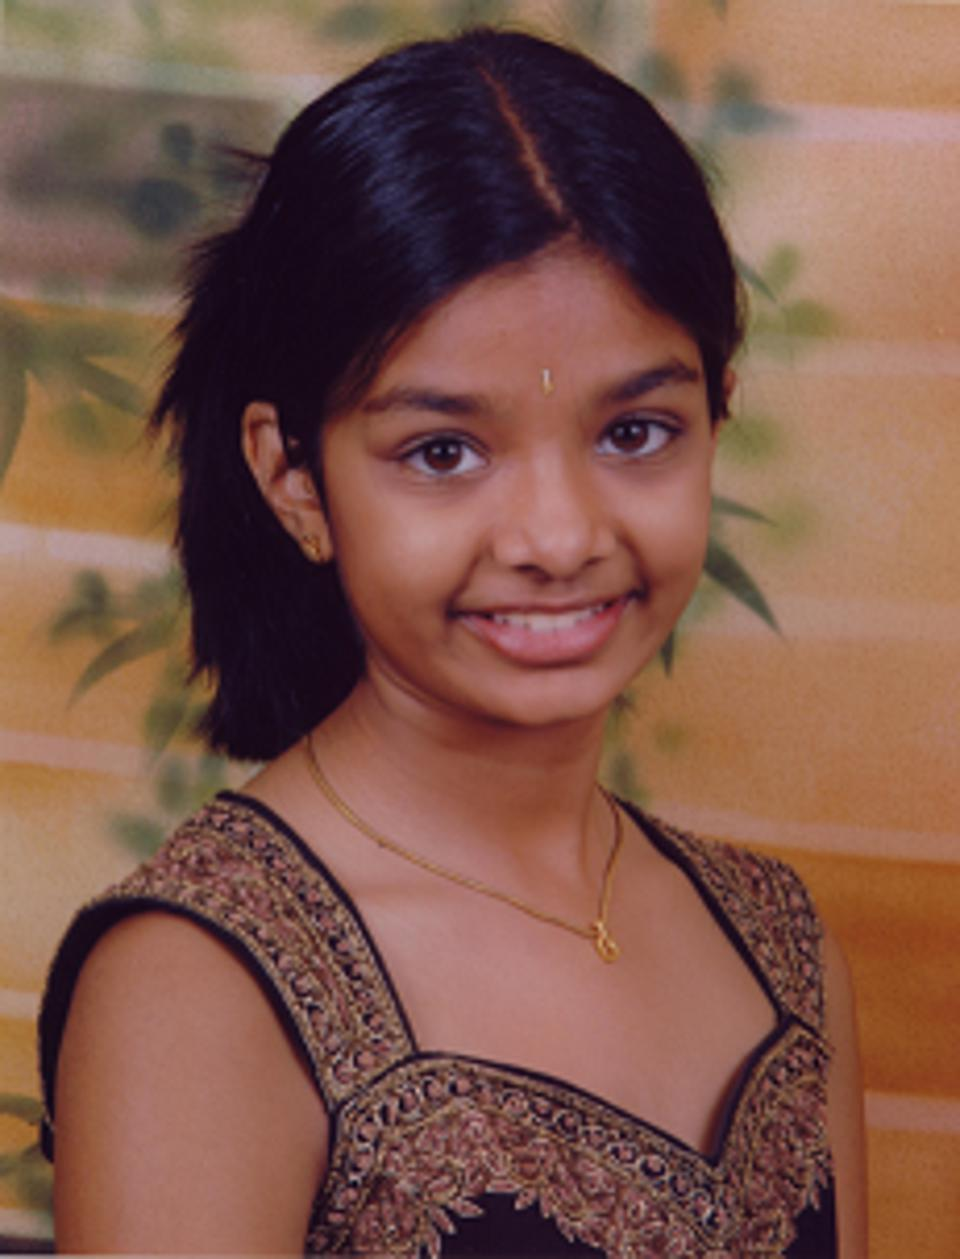 A young Amiti has her photo taken.